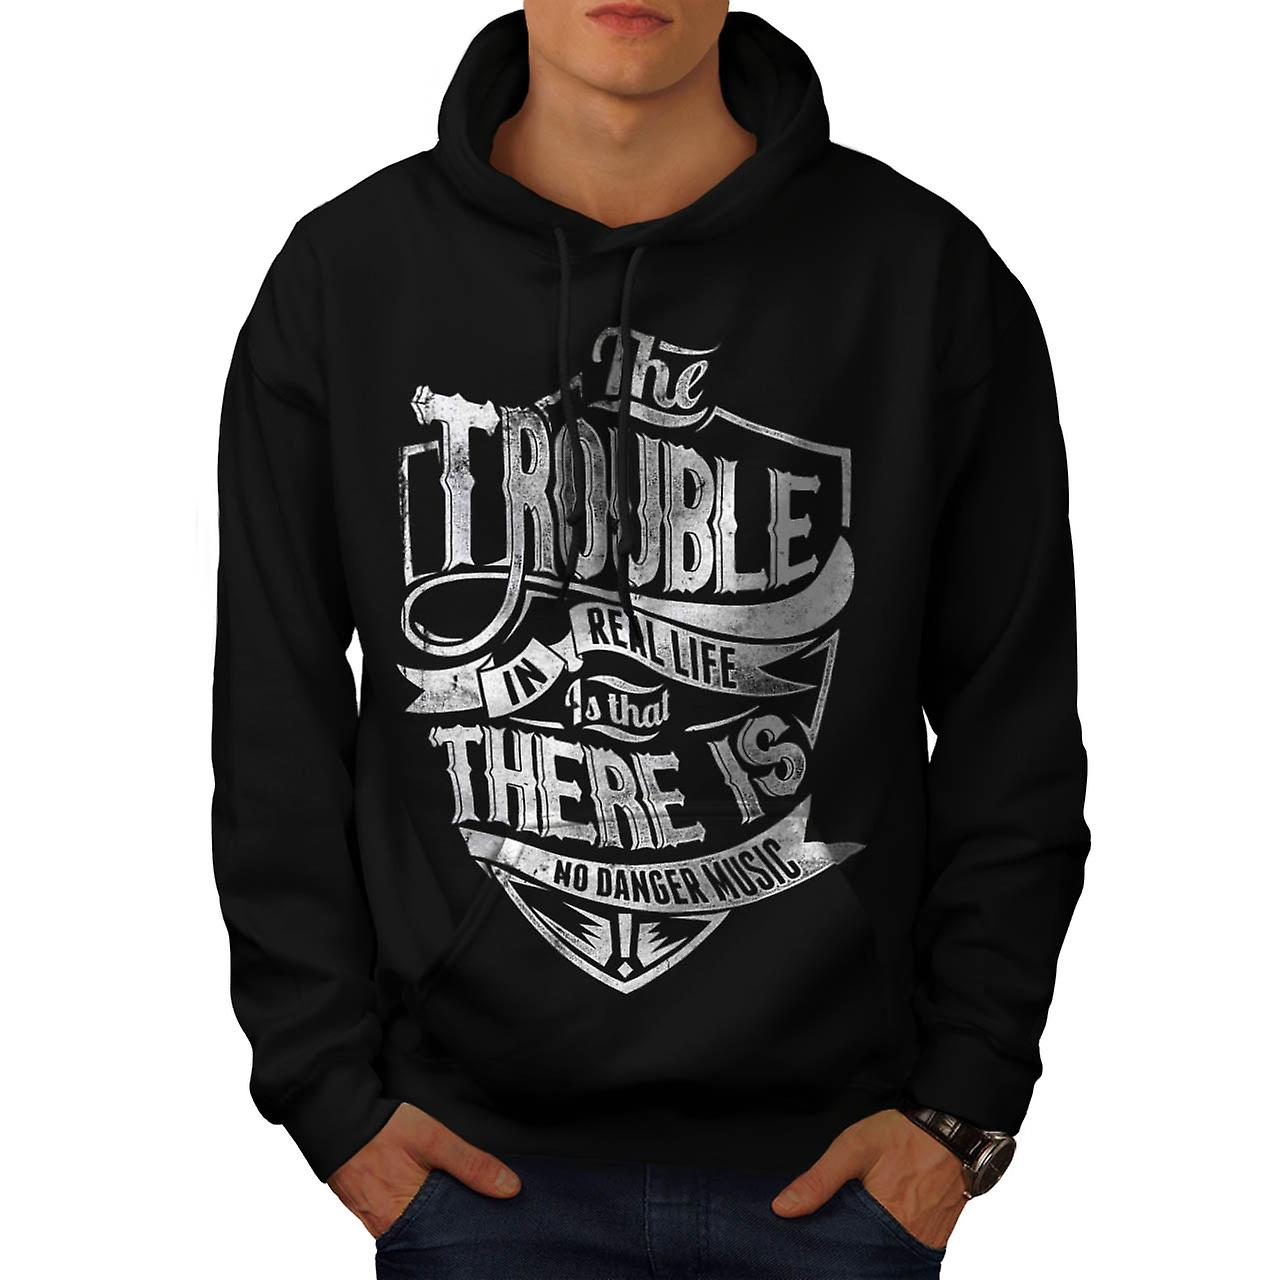 La vie réelle Danger Tune Music battu hommes Black Hoodie | Wellcoda